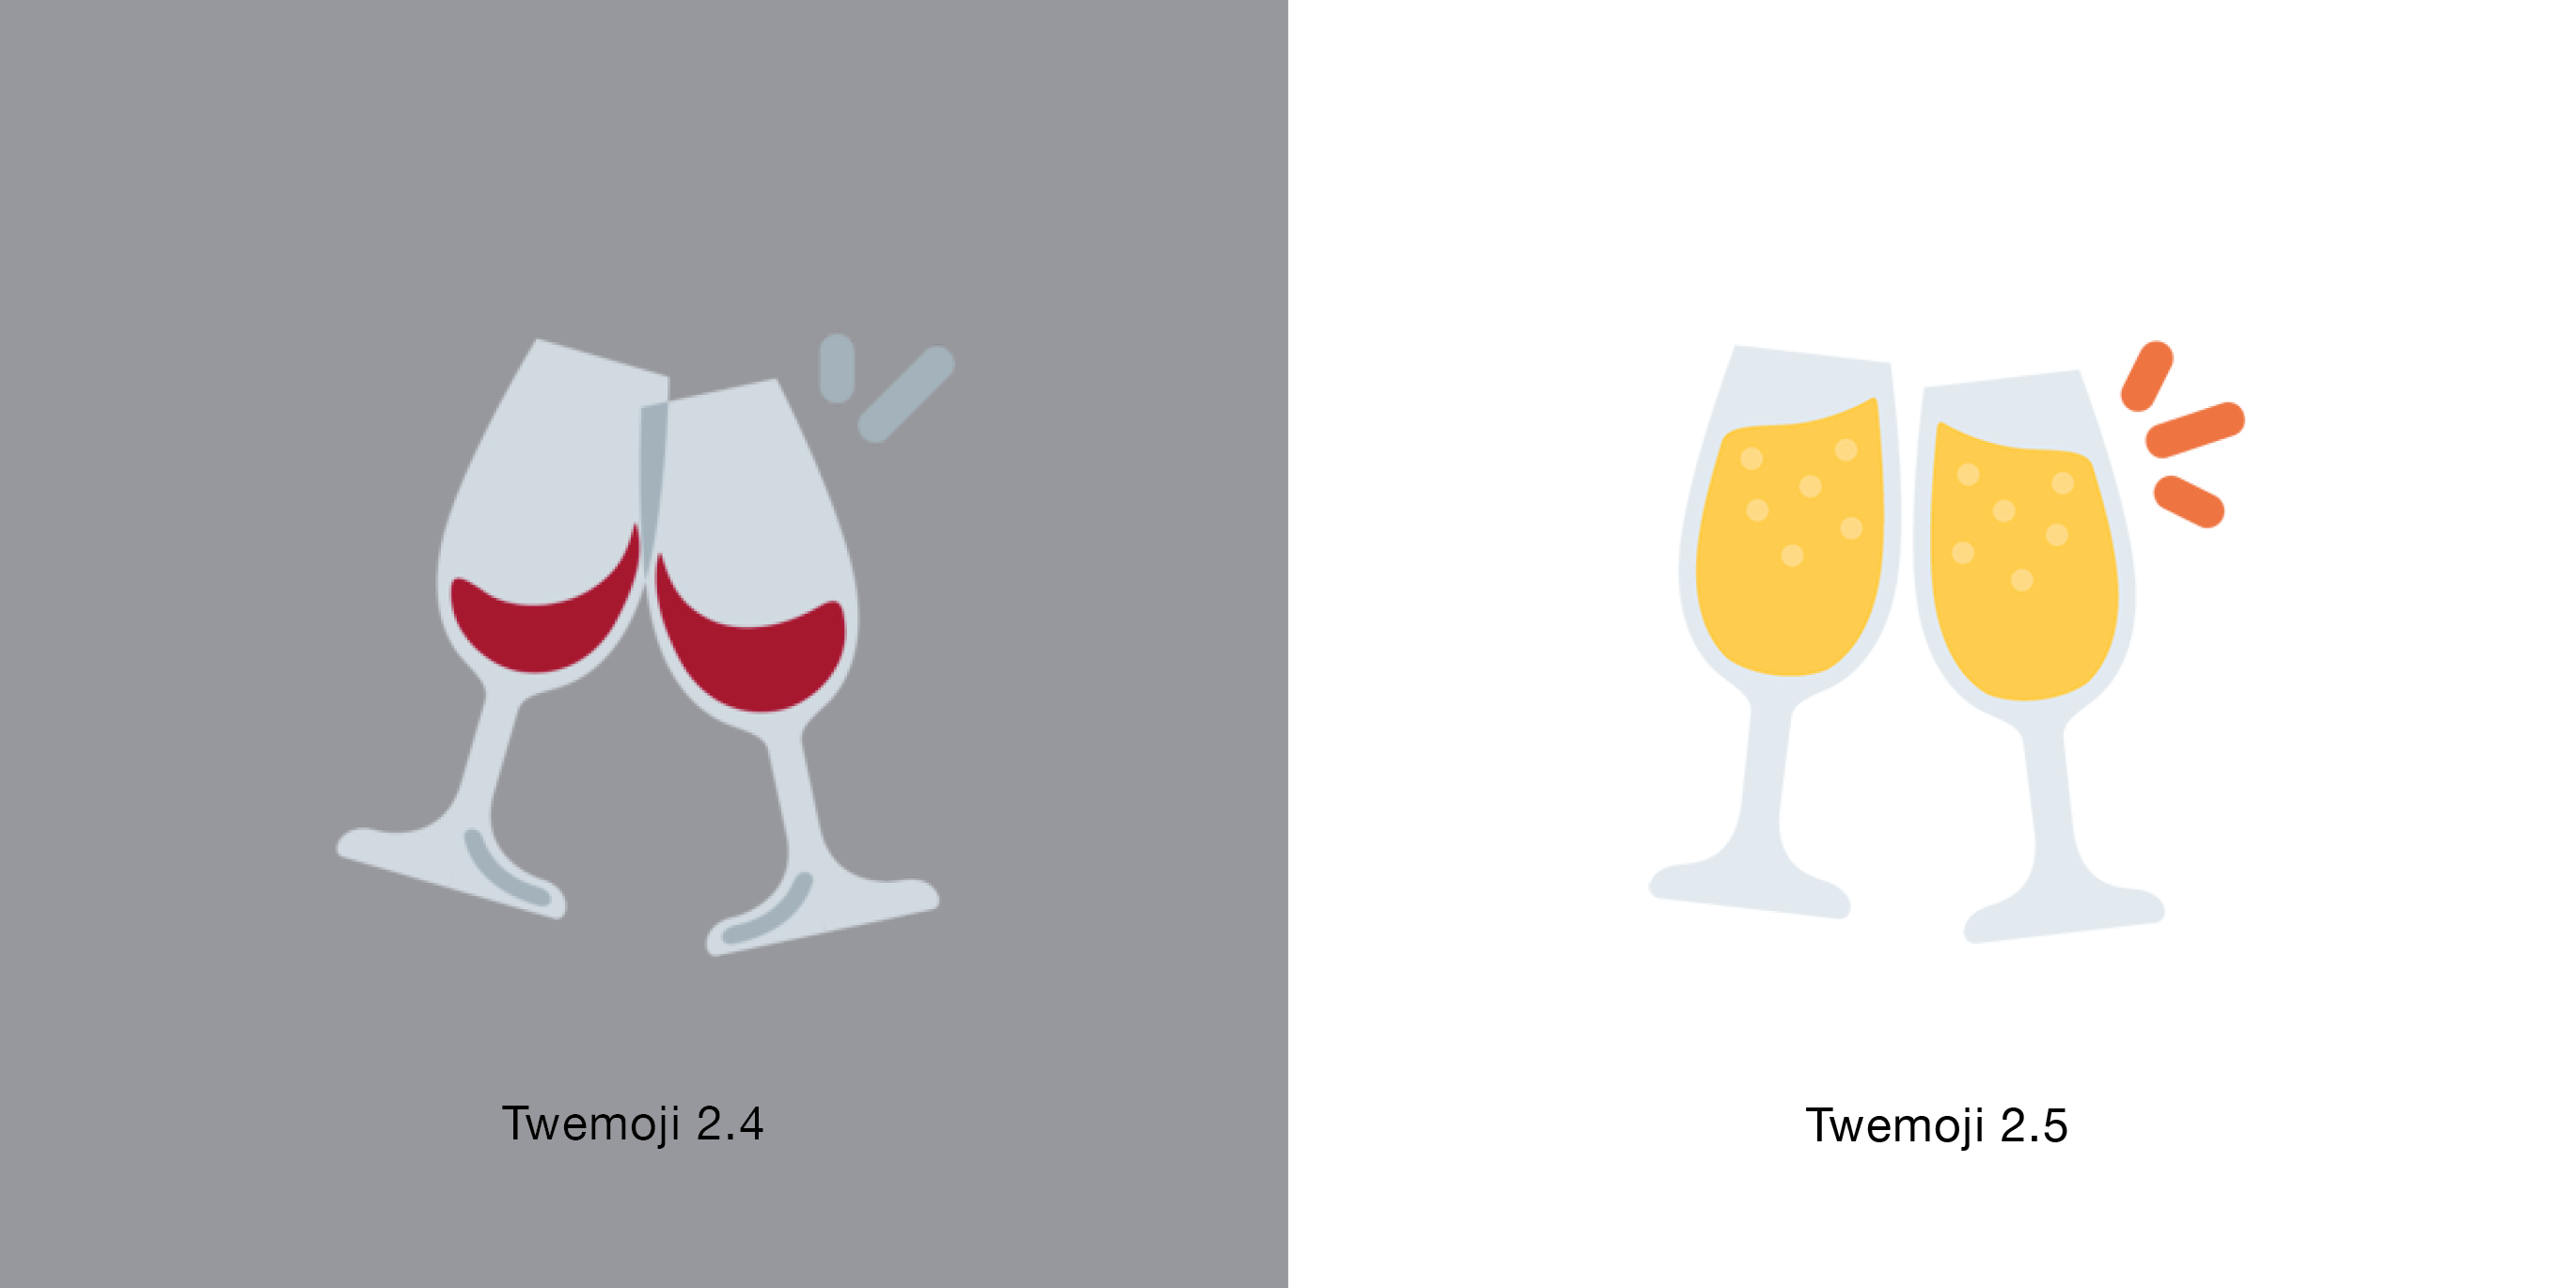 clinking-glasses-2.5-emojipedia-twittertwemoji-emojipedia-1